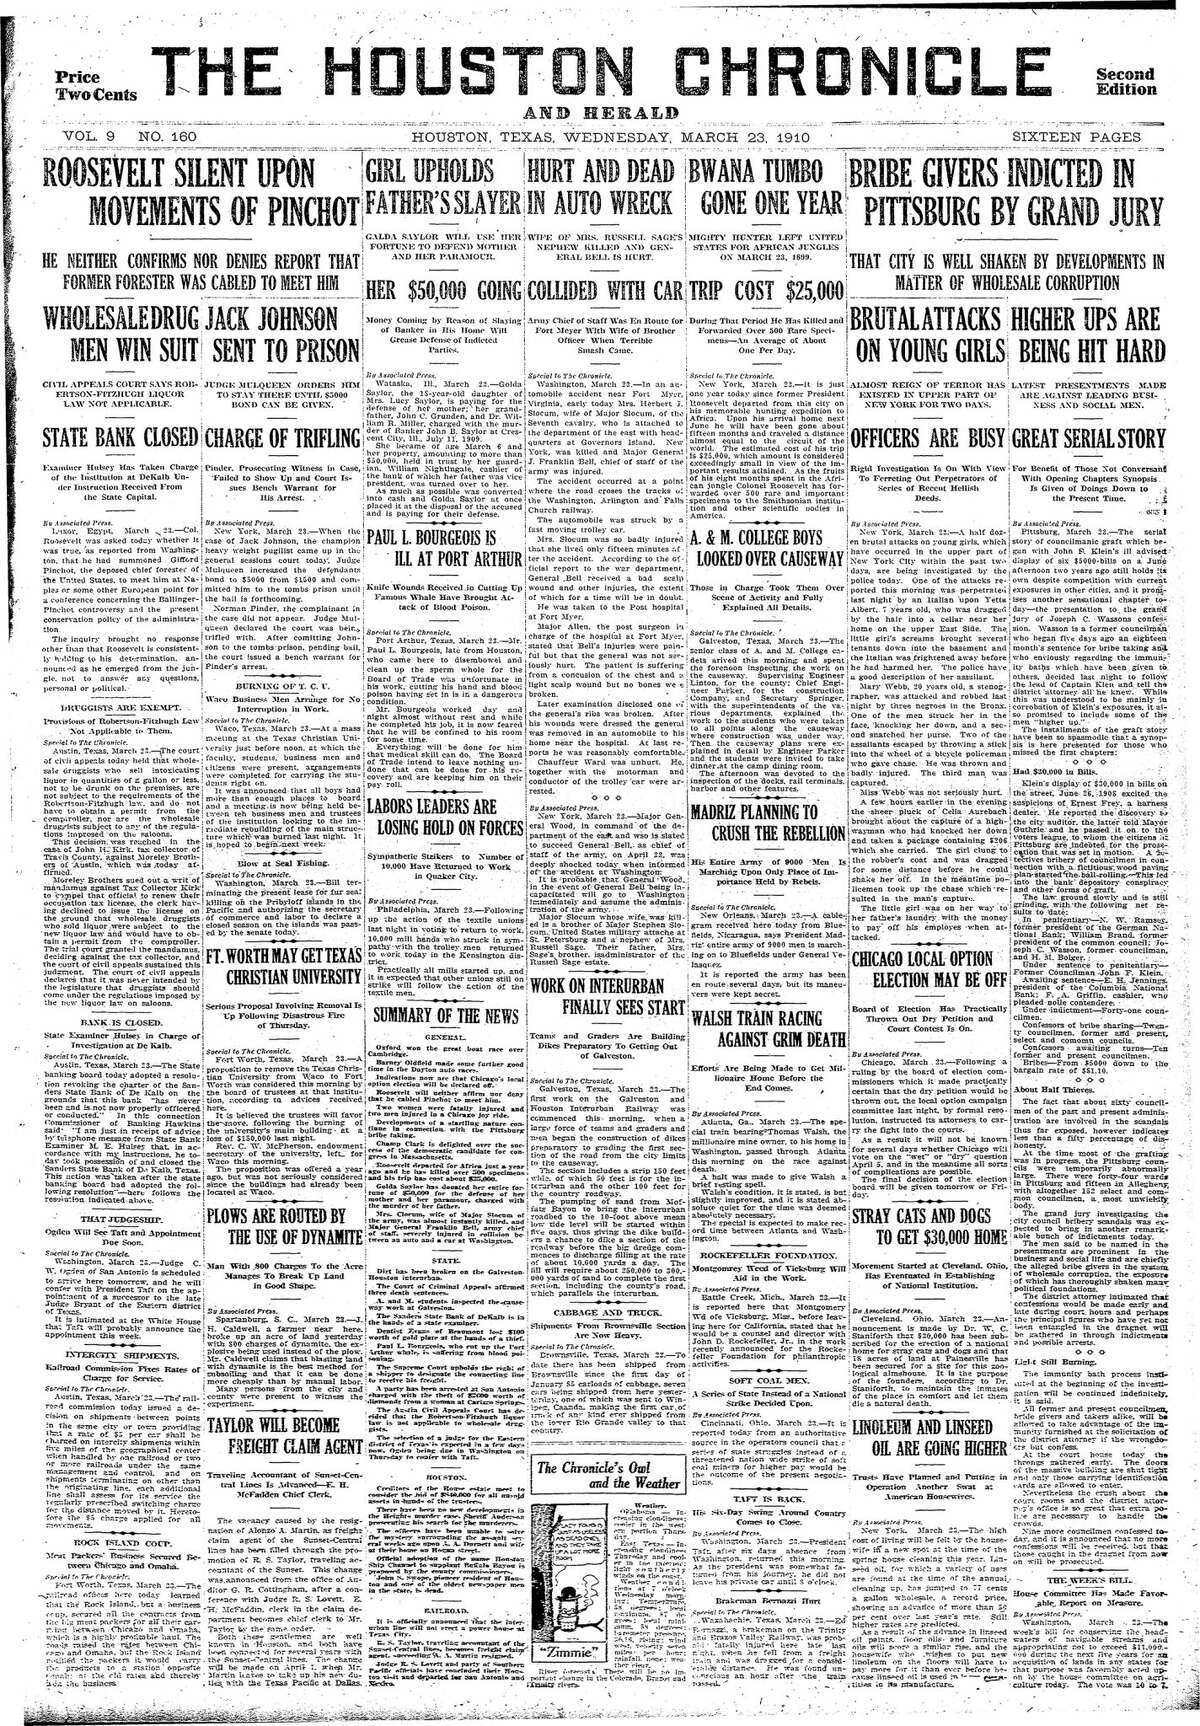 Houston Chronicle front page from March 23, 1910.